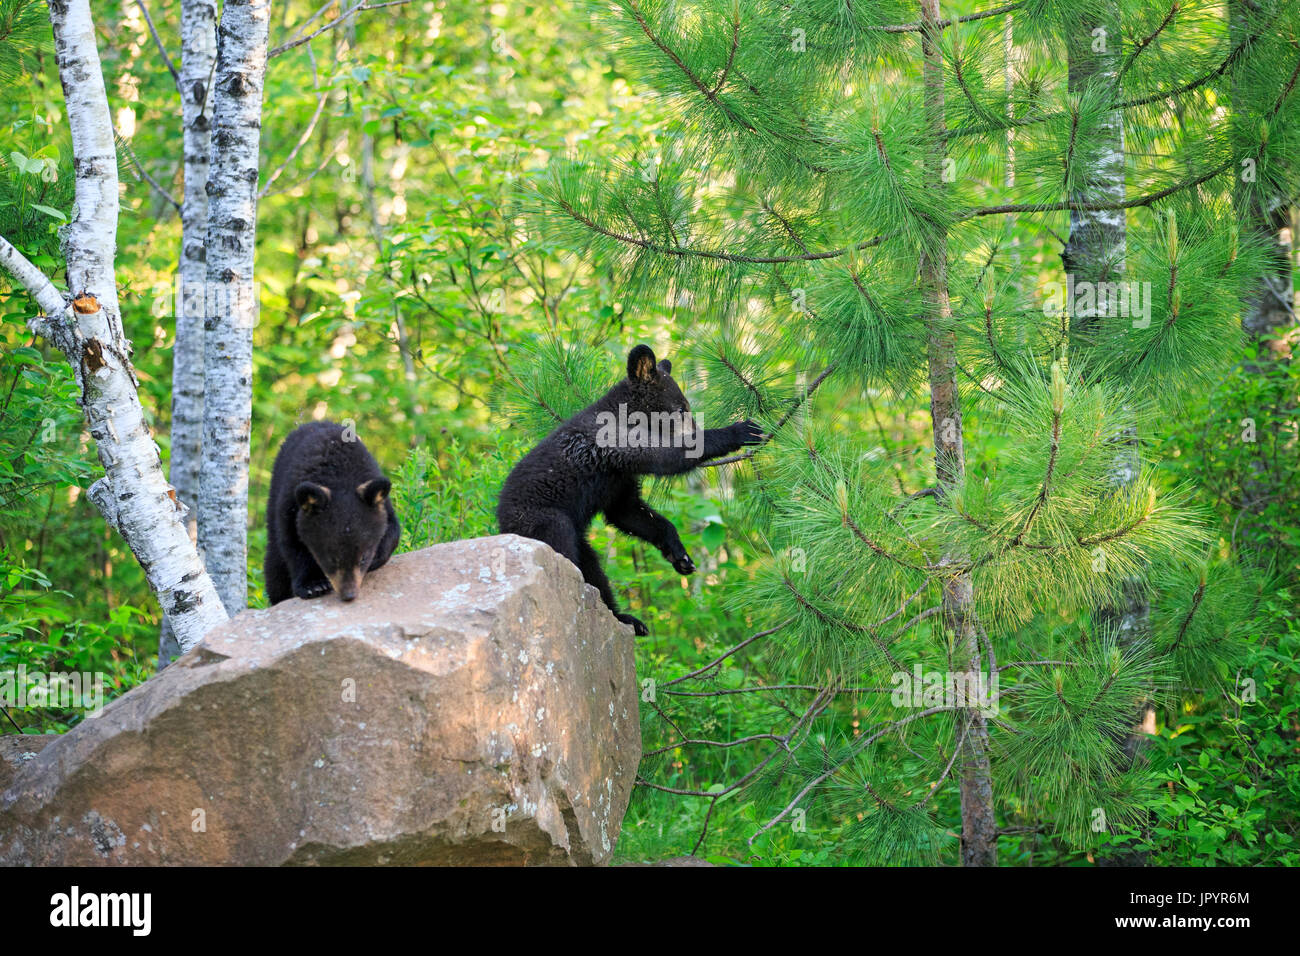 Young Black Bears undergrowth in the spring - Minnesota USA - Stock Image